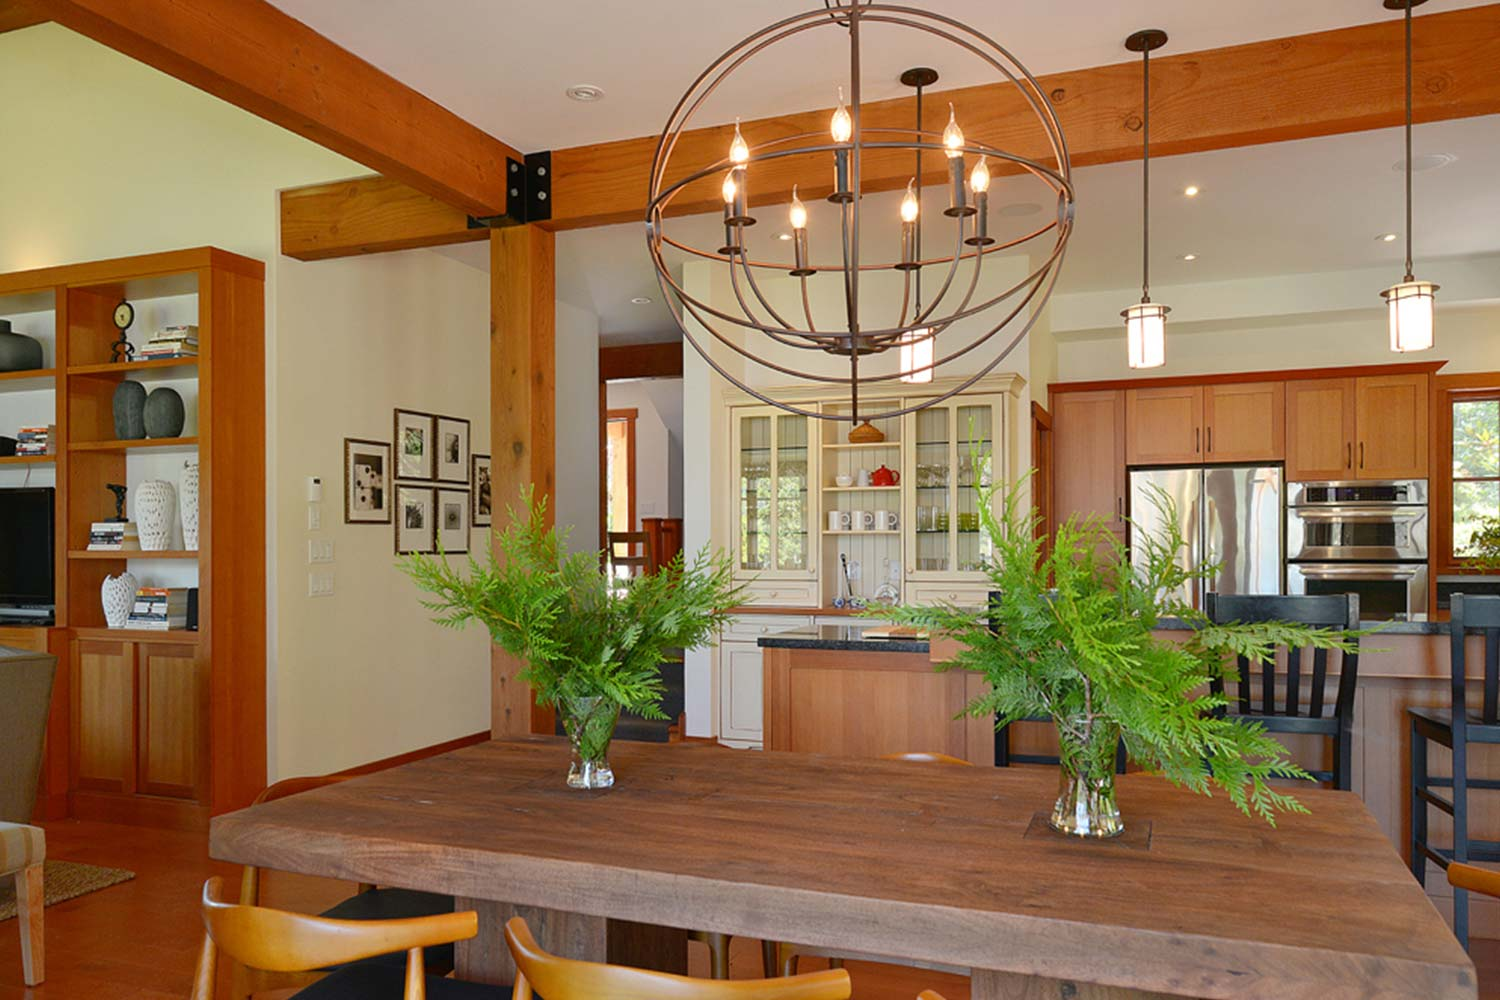 The wooden dining table in this premium holiday home seats up to 8 people and is next to the well-equipped gourmet kitchen.